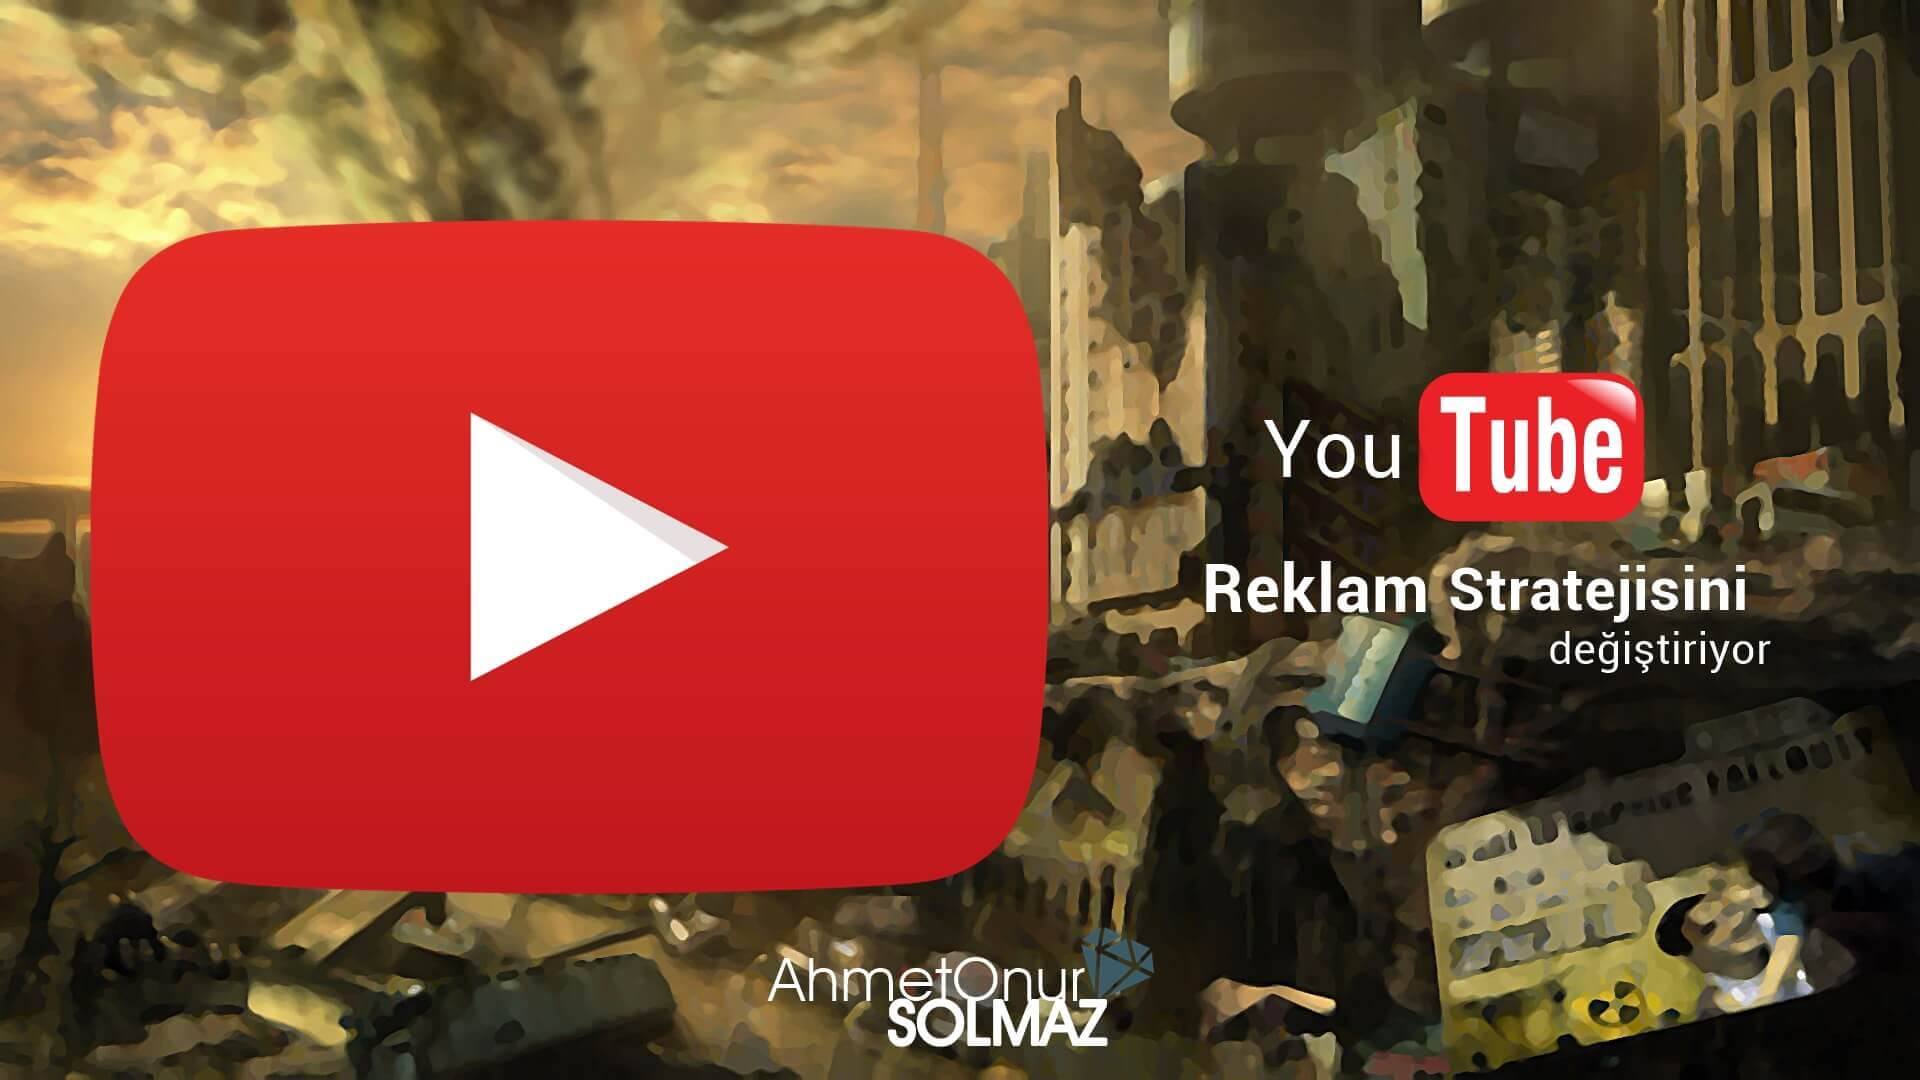 youtube-reklam-stratejisini-degistiriyor